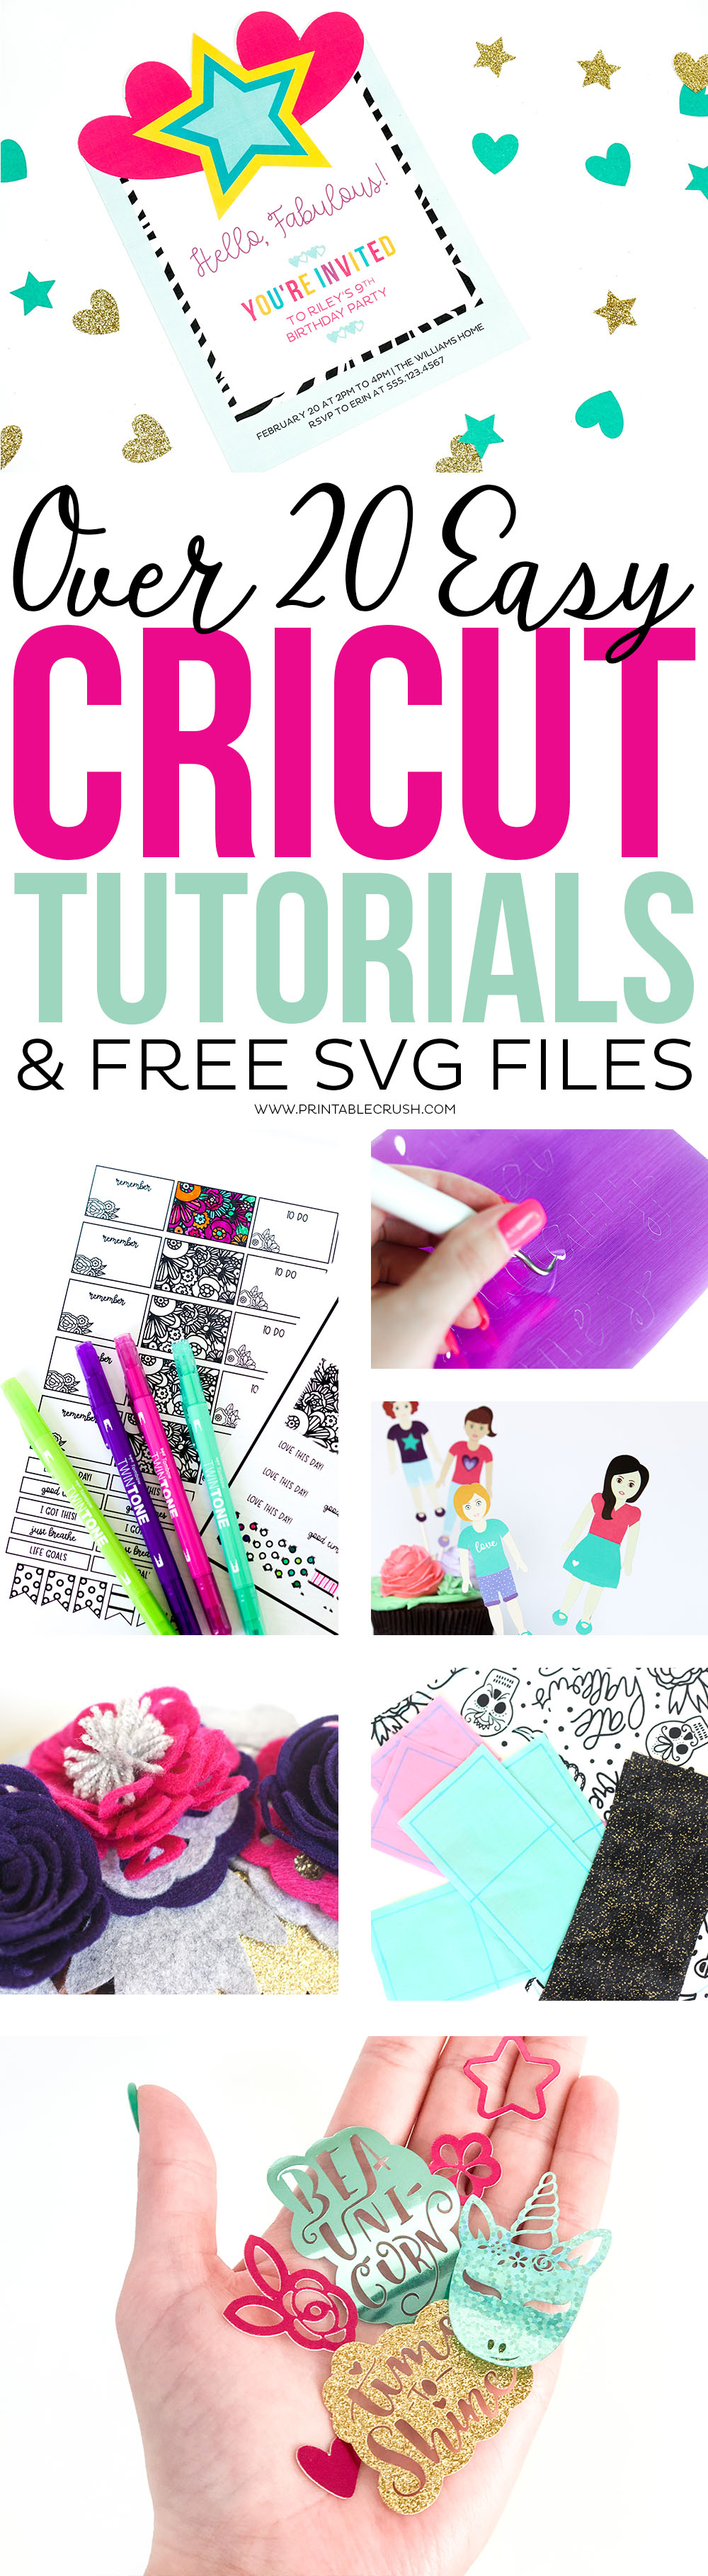 Long collage with pics of SVG files